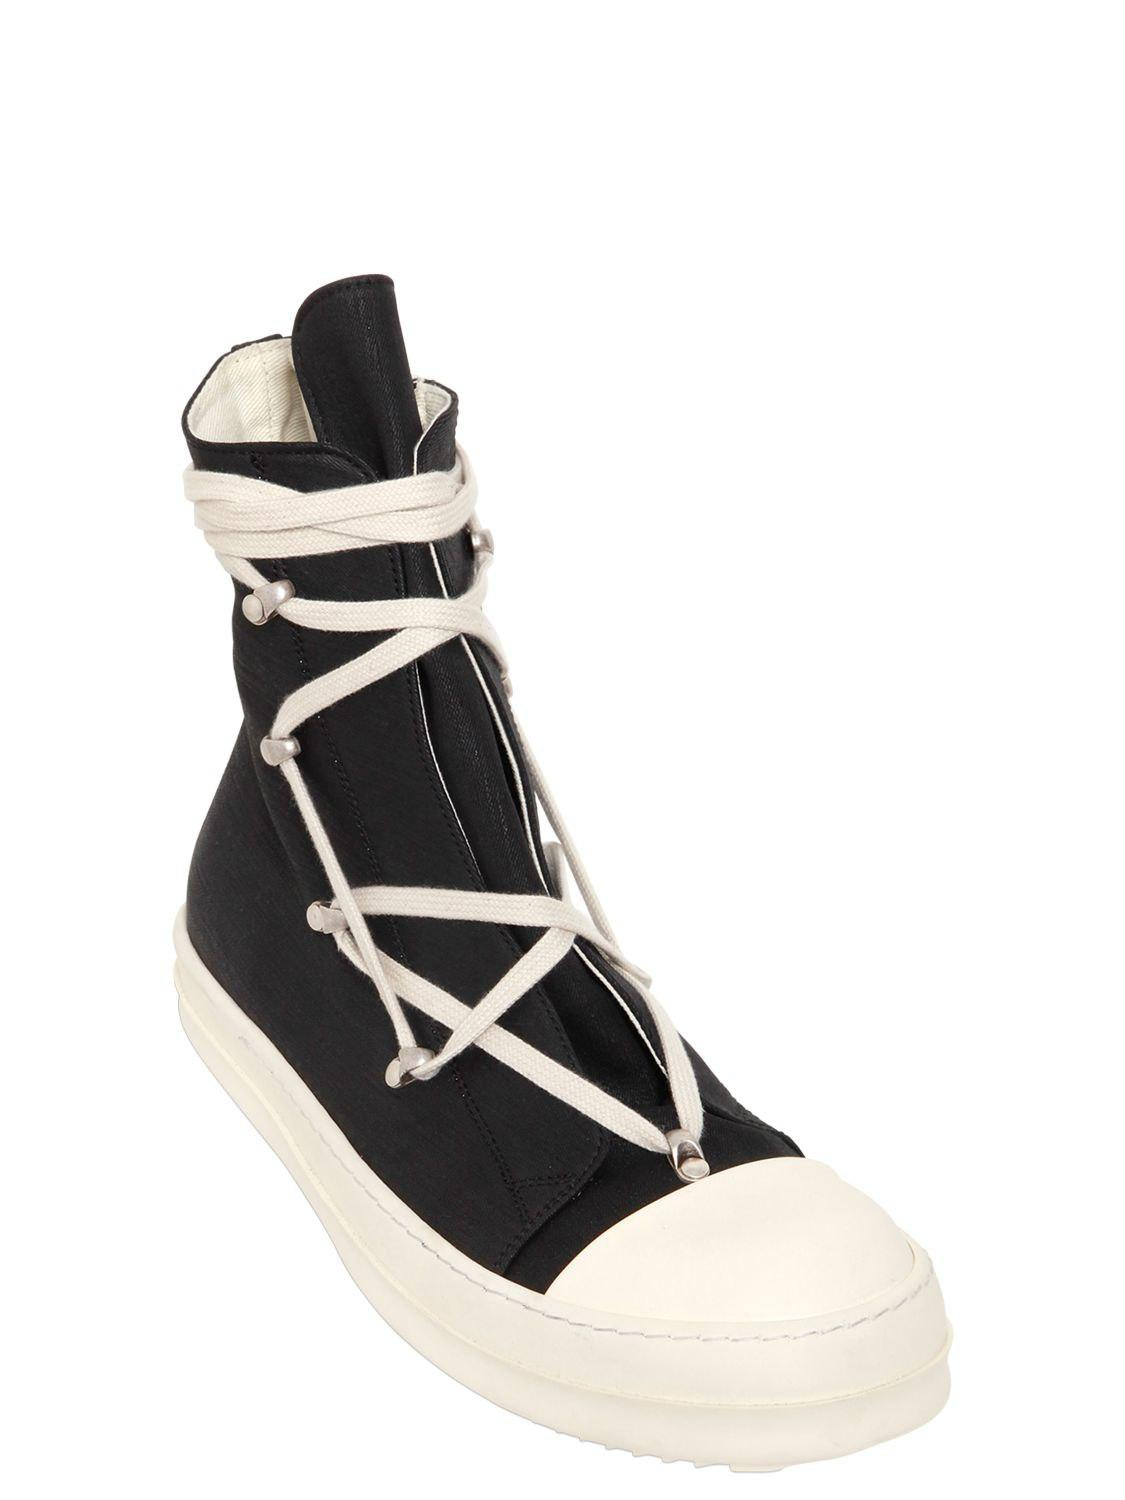 Rick Owens ZIP STRETCH WAXED COTTON HIGH SNEAKERS 8gxjyb